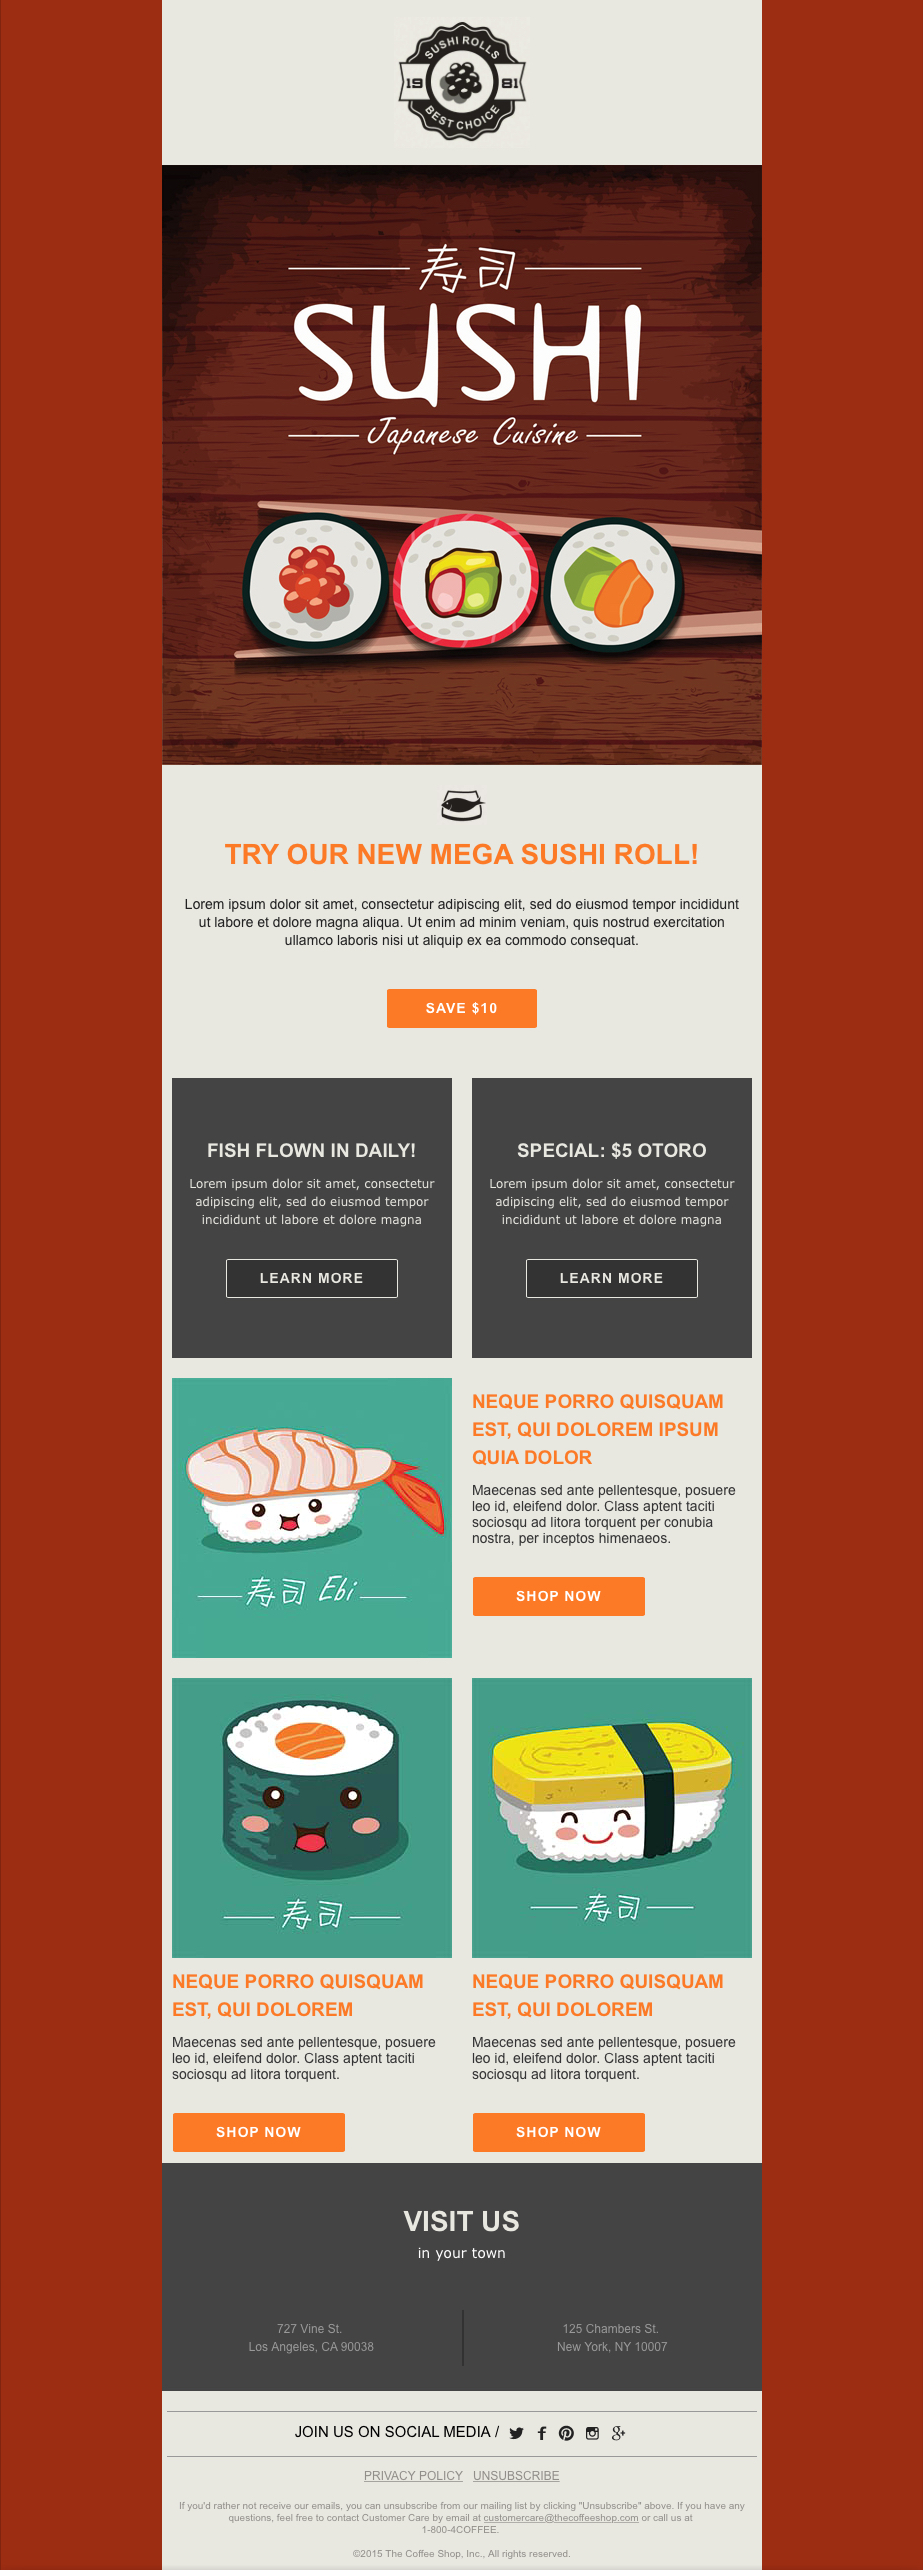 How to Customize an HTML Email Template in 7 Steps - Email On Acid